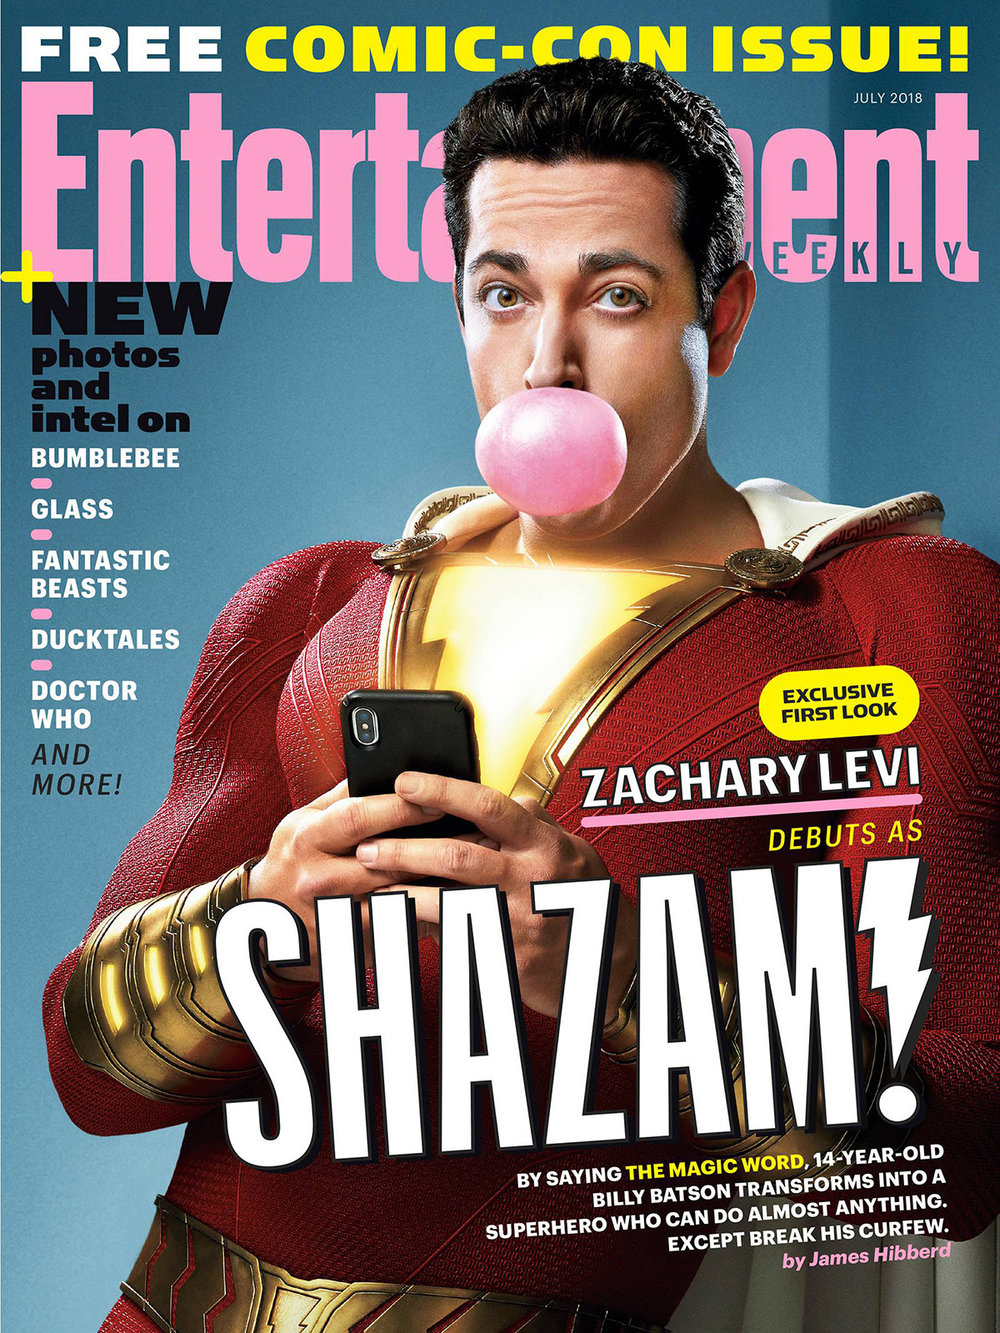 shazam-graces-the-cover-of-ew-magazines-comic-con-issue1